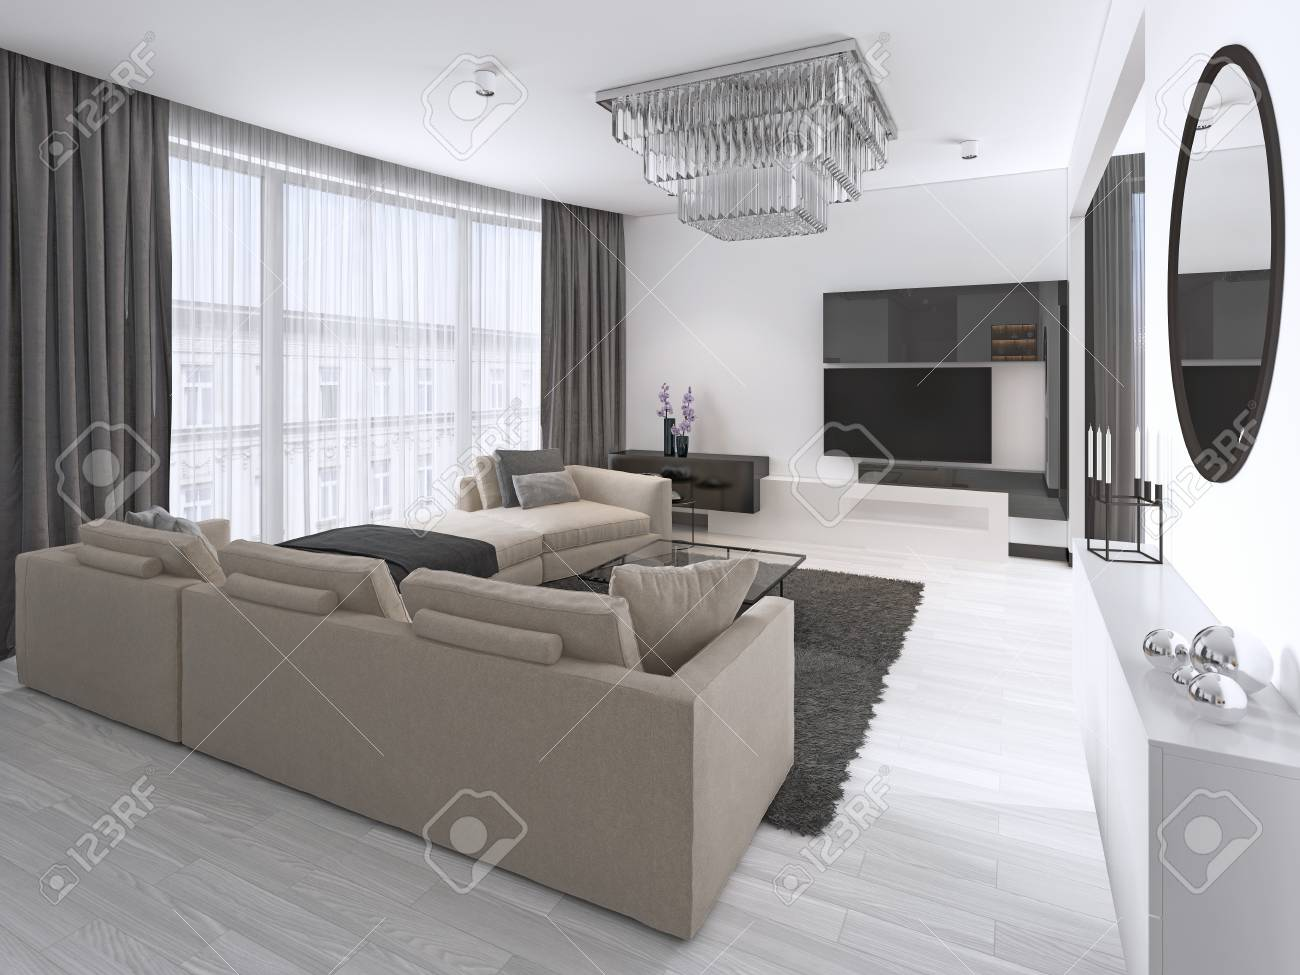 Interior Design: Living room with a large corner sofa and a TV..